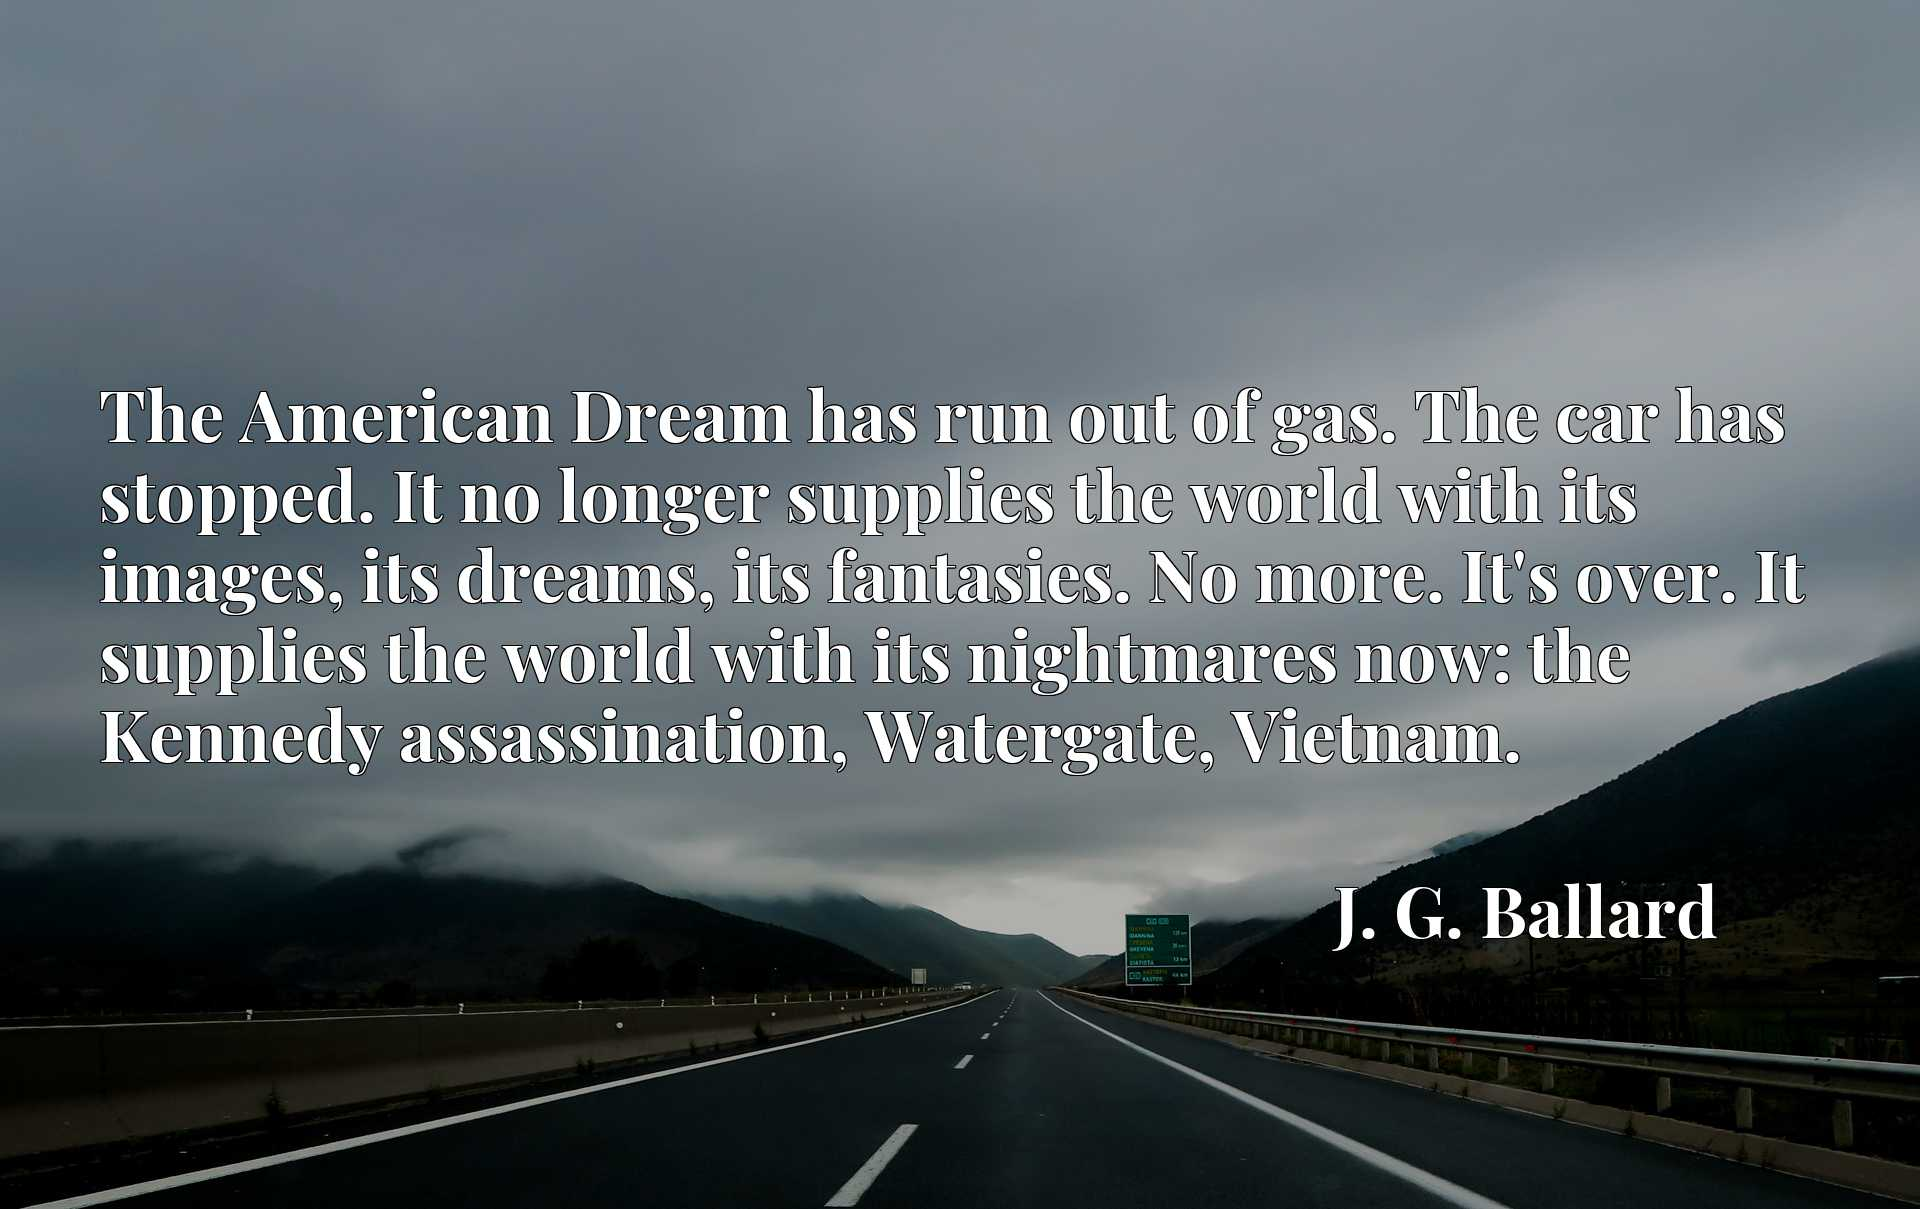 The American Dream has run out of gas. The car has stopped. It no longer supplies the world with its images, its dreams, its fantasies. No more. It's over. It supplies the world with its nightmares now: the Kennedy assassination, Watergate, Vietnam.